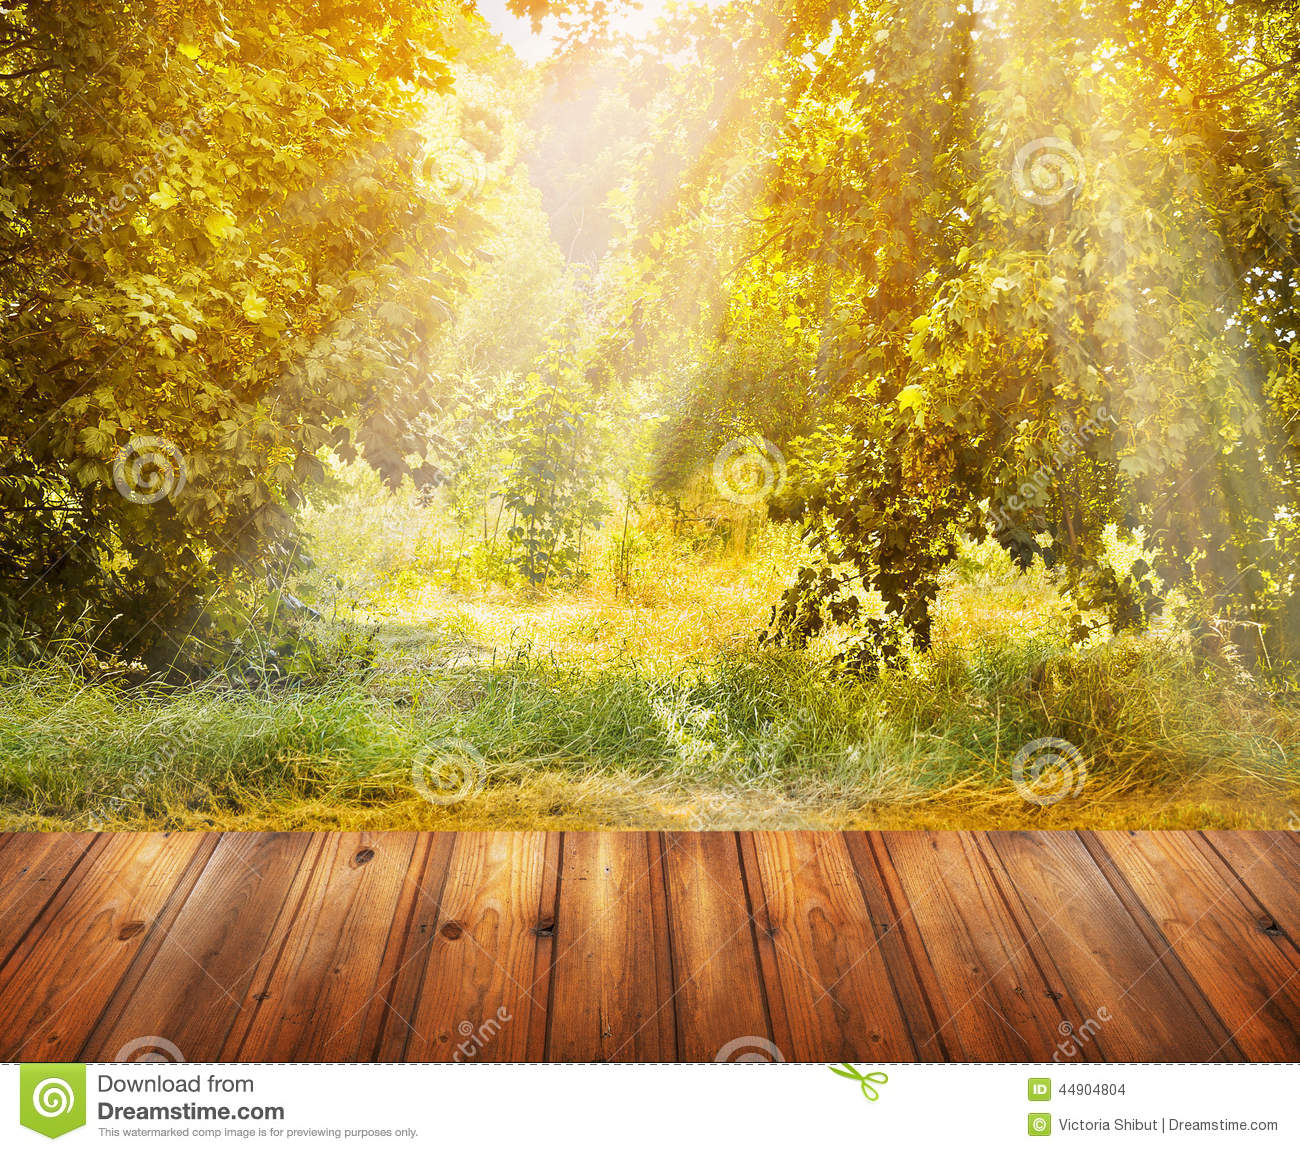 Fall Wooden Wallpaper Autumn Nature Background With Wooden Terrace And Fall Tree